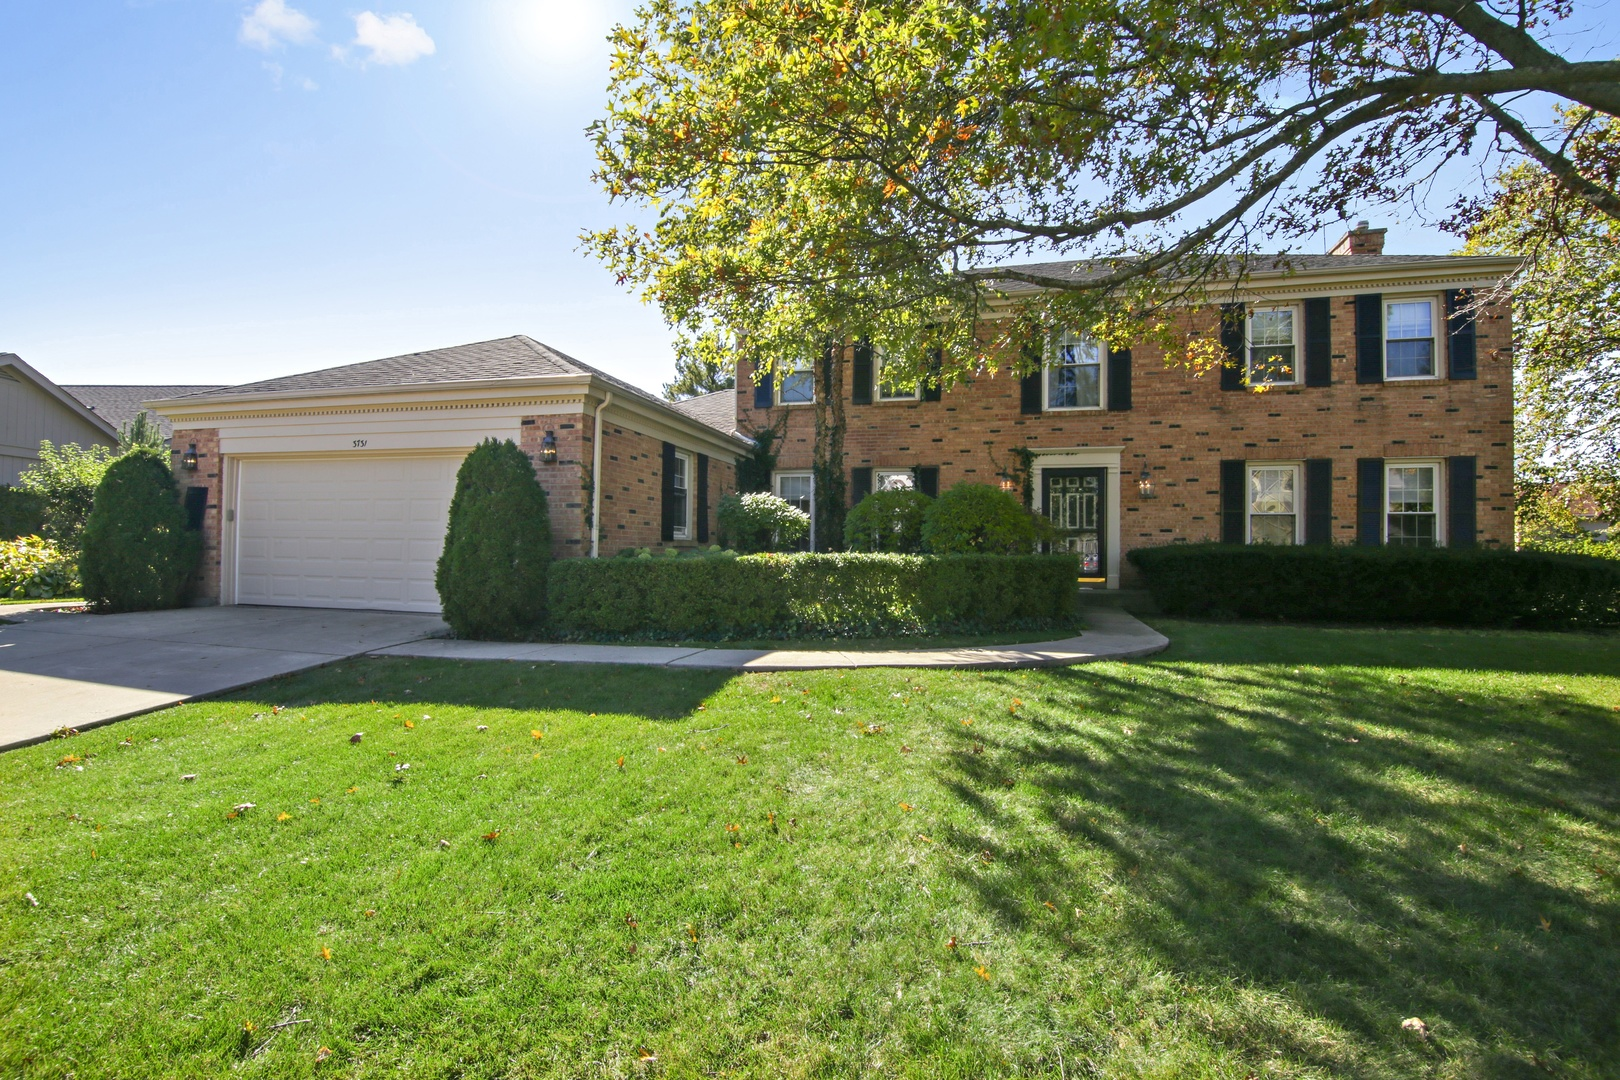 3731 Russett Lane, Northbrook in Cook County, IL 60062 Home for Sale